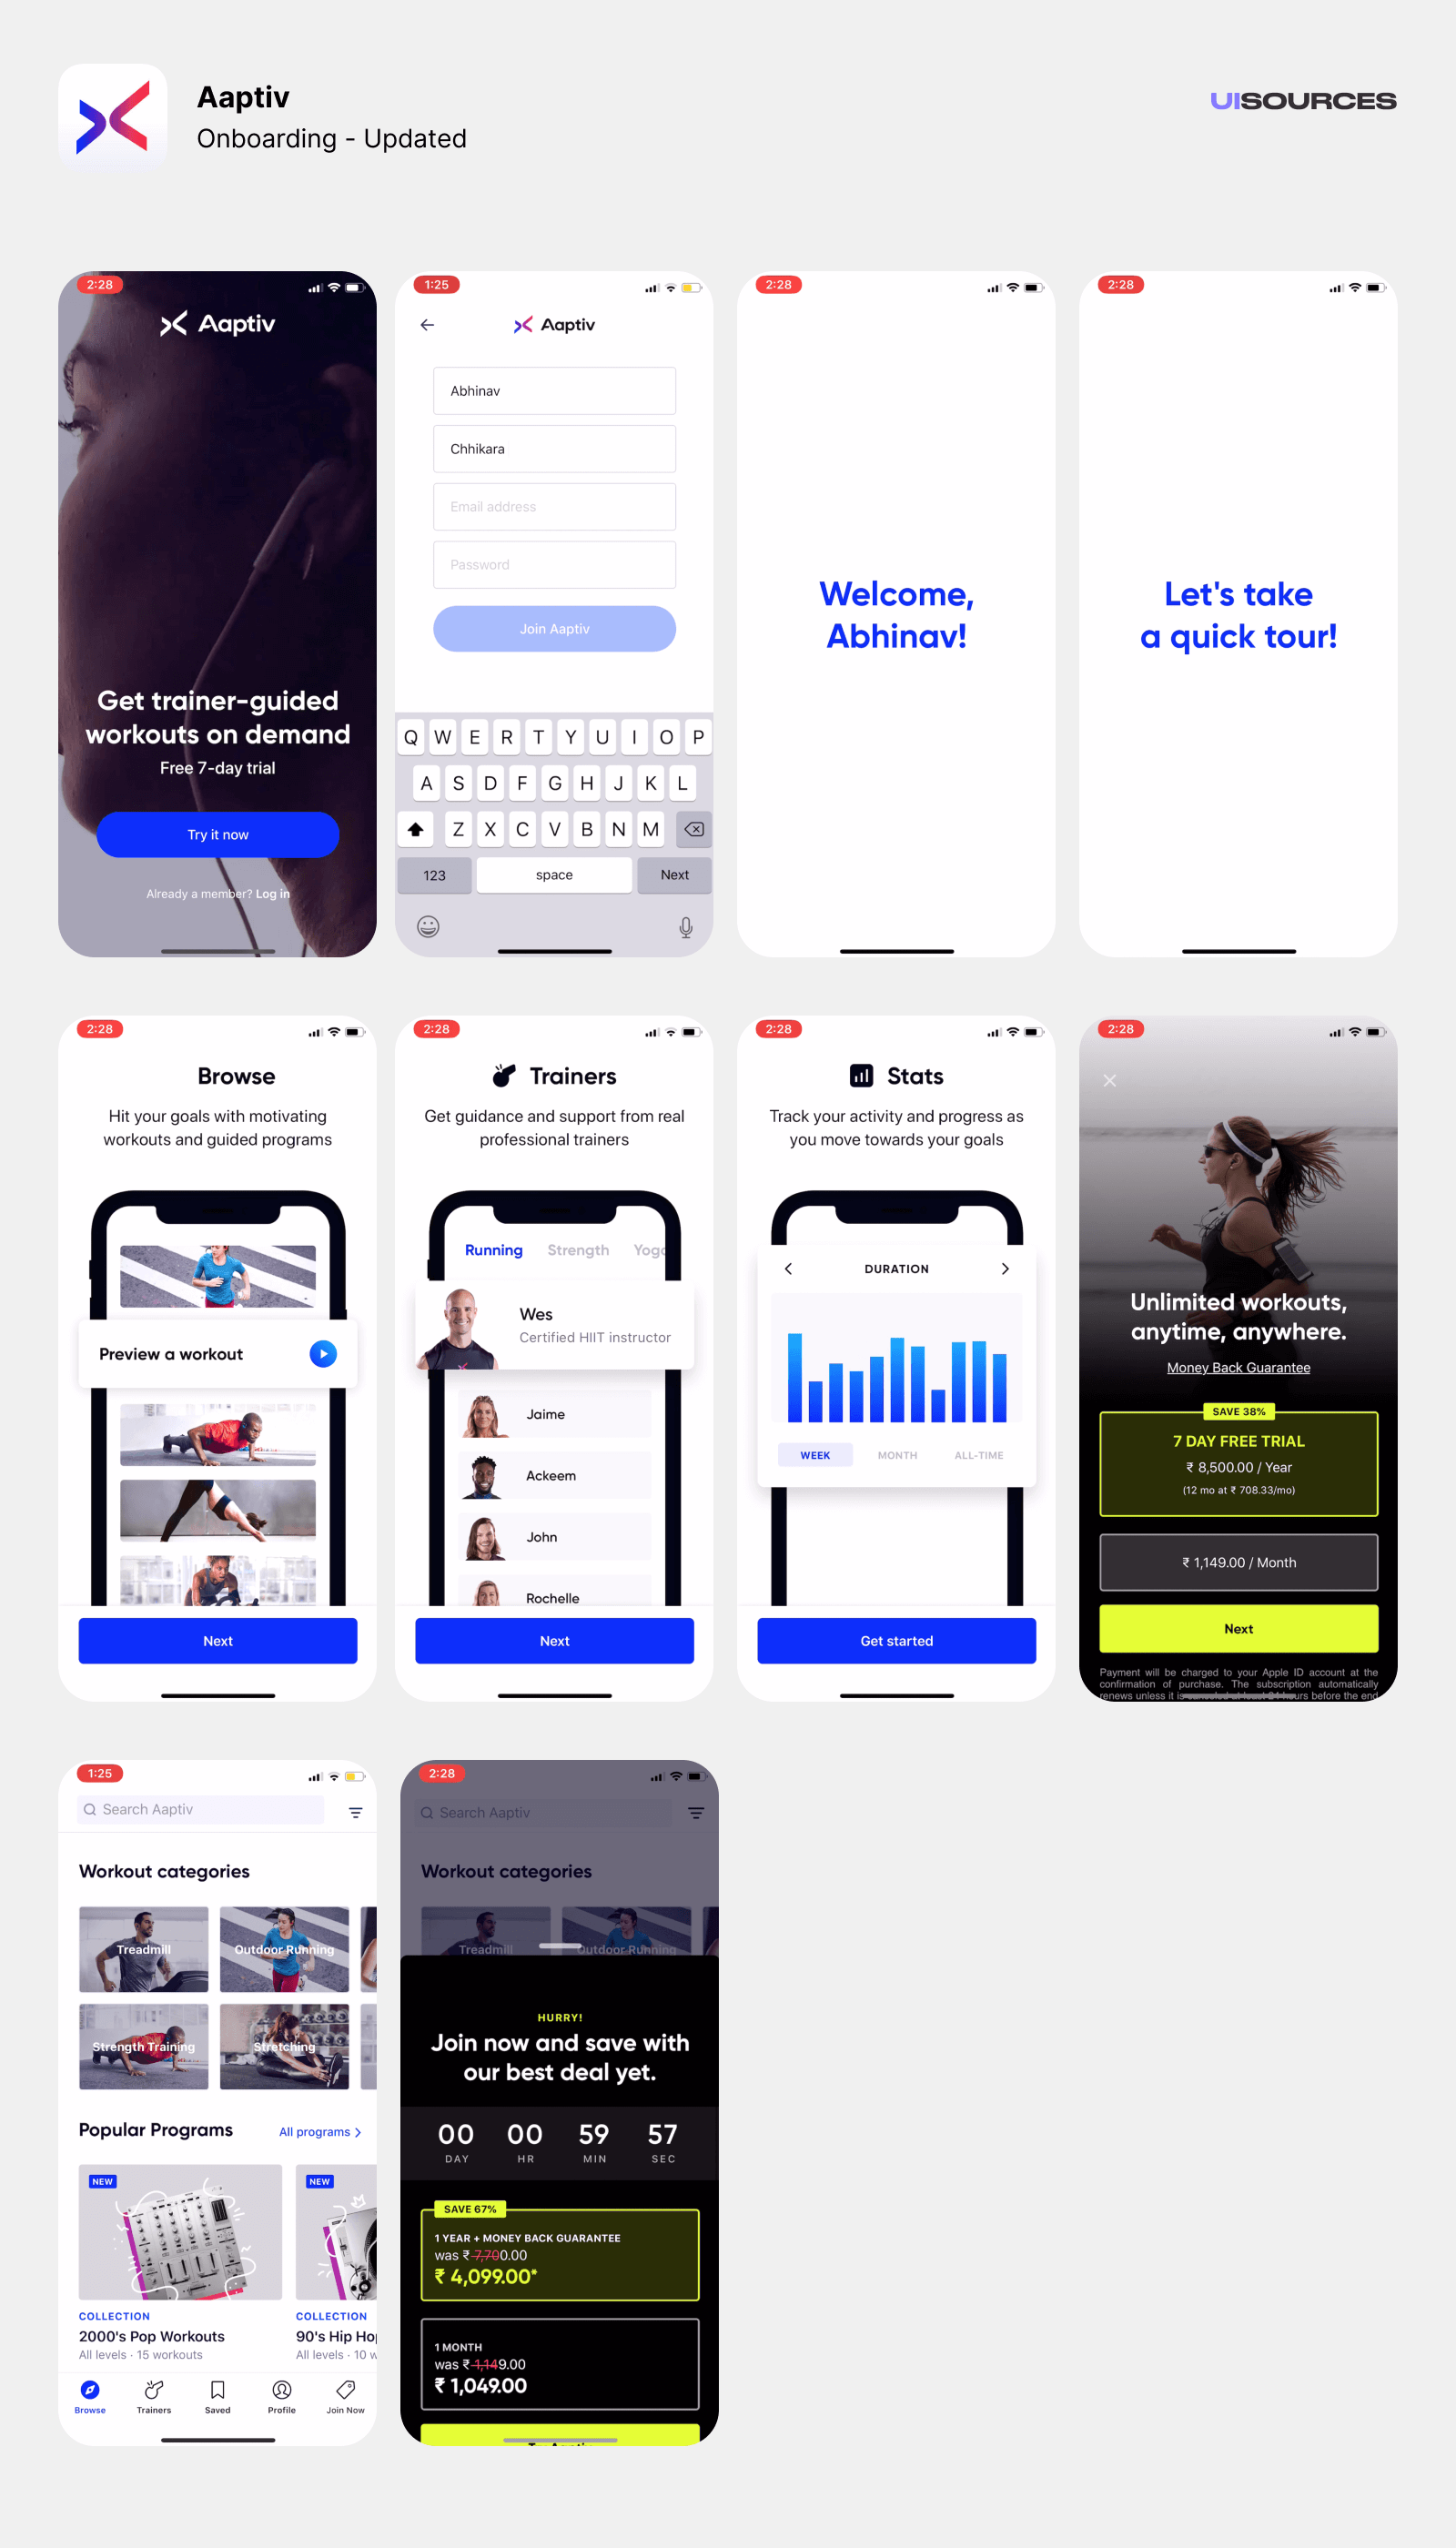 03 aaptiv onboarding updated